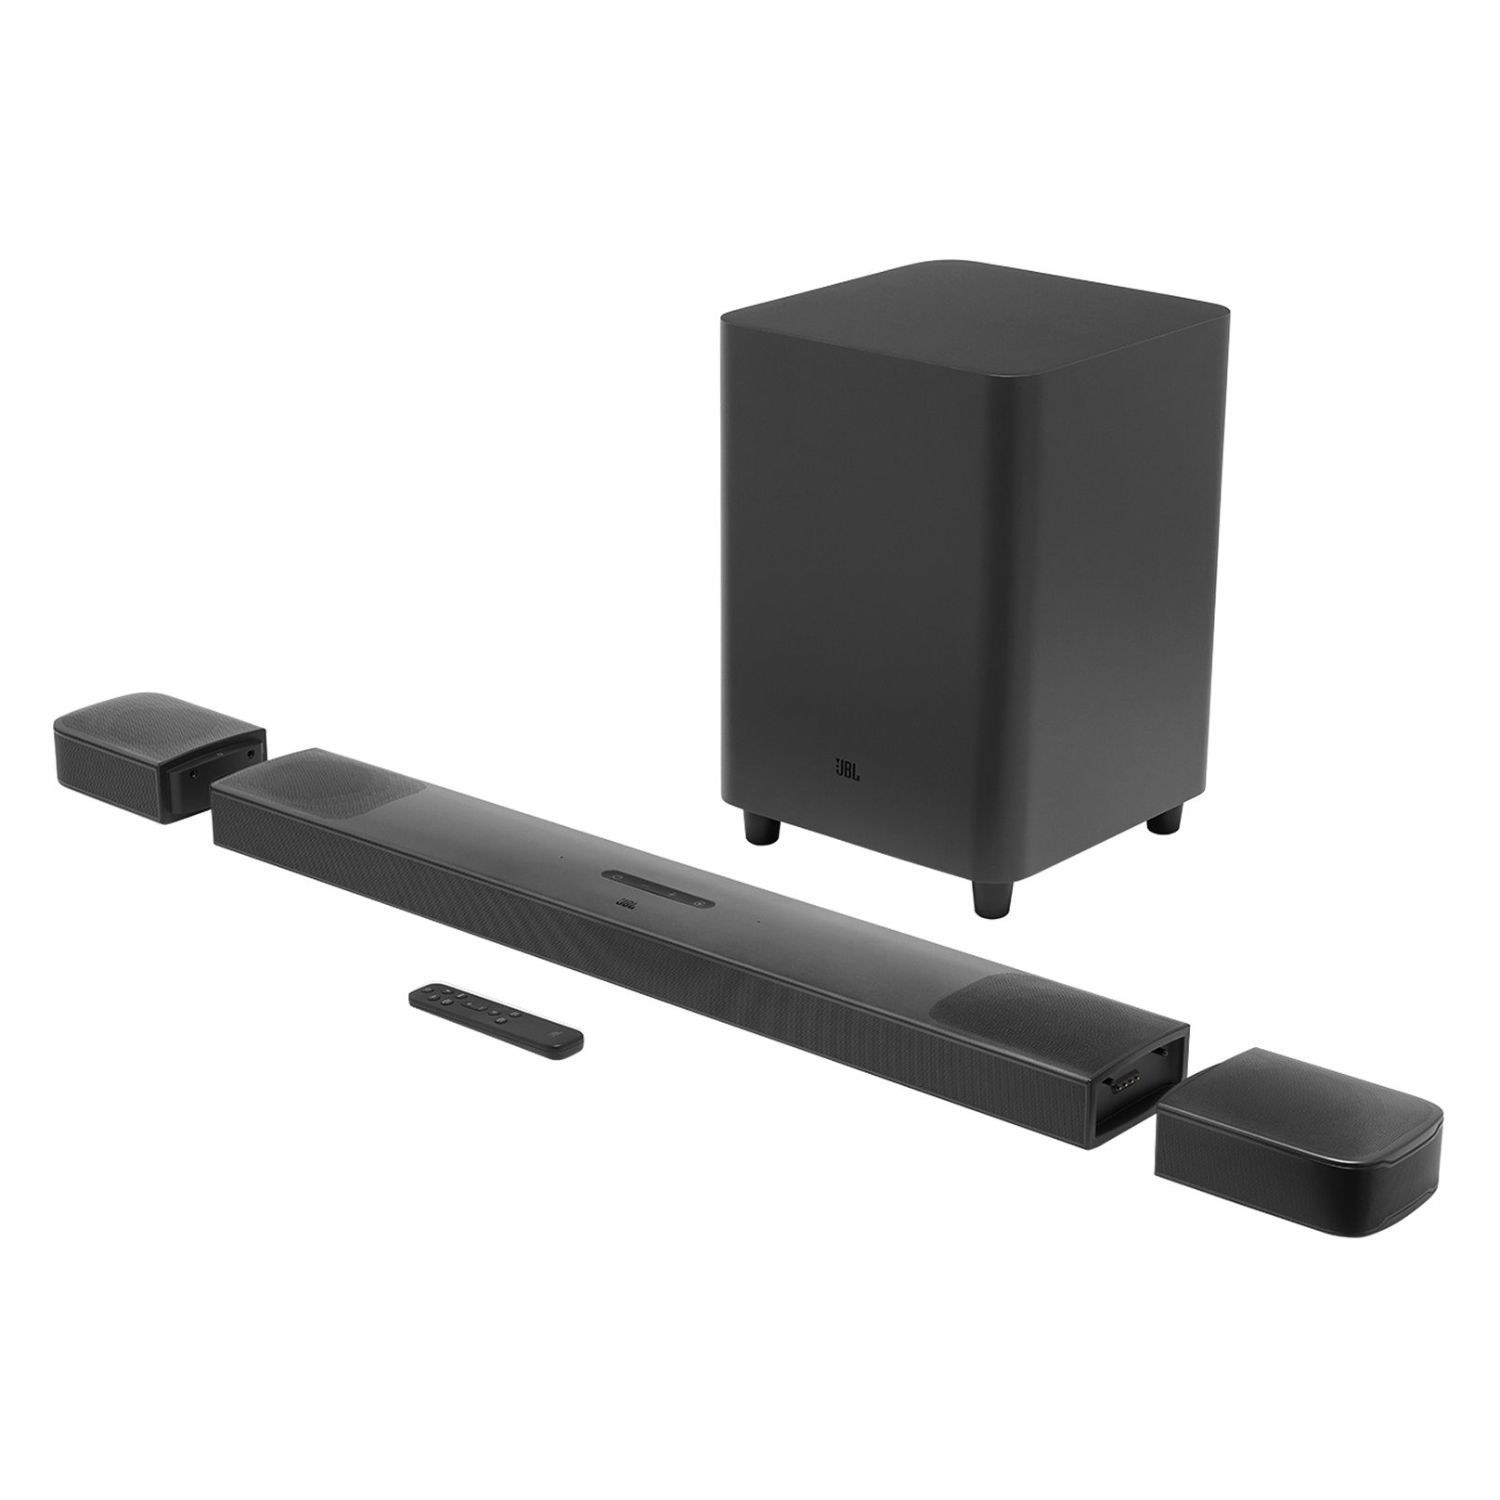 7 Best Home Theater Speakers Of 2021 Home Theater Speaker System Reviews